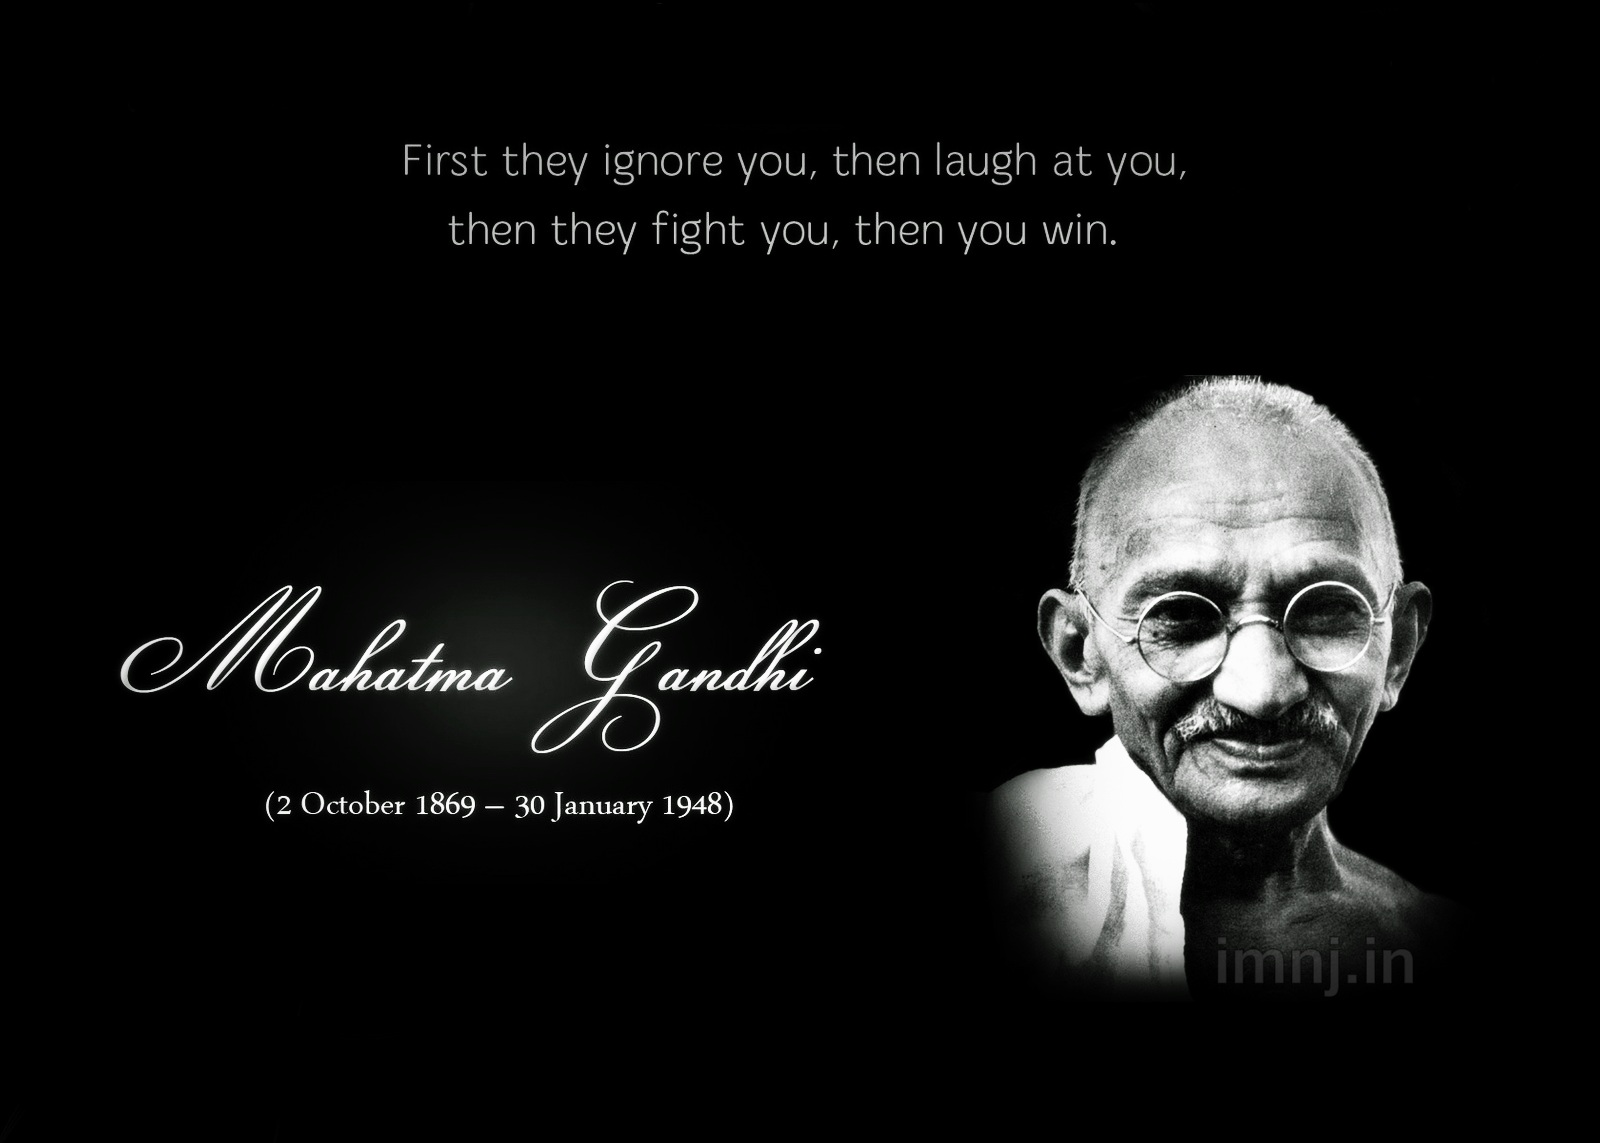 """""""First they ignore you, then they laugh at you, then they fight you, then you win."""" - Nope, not Ghandi, apparently."""